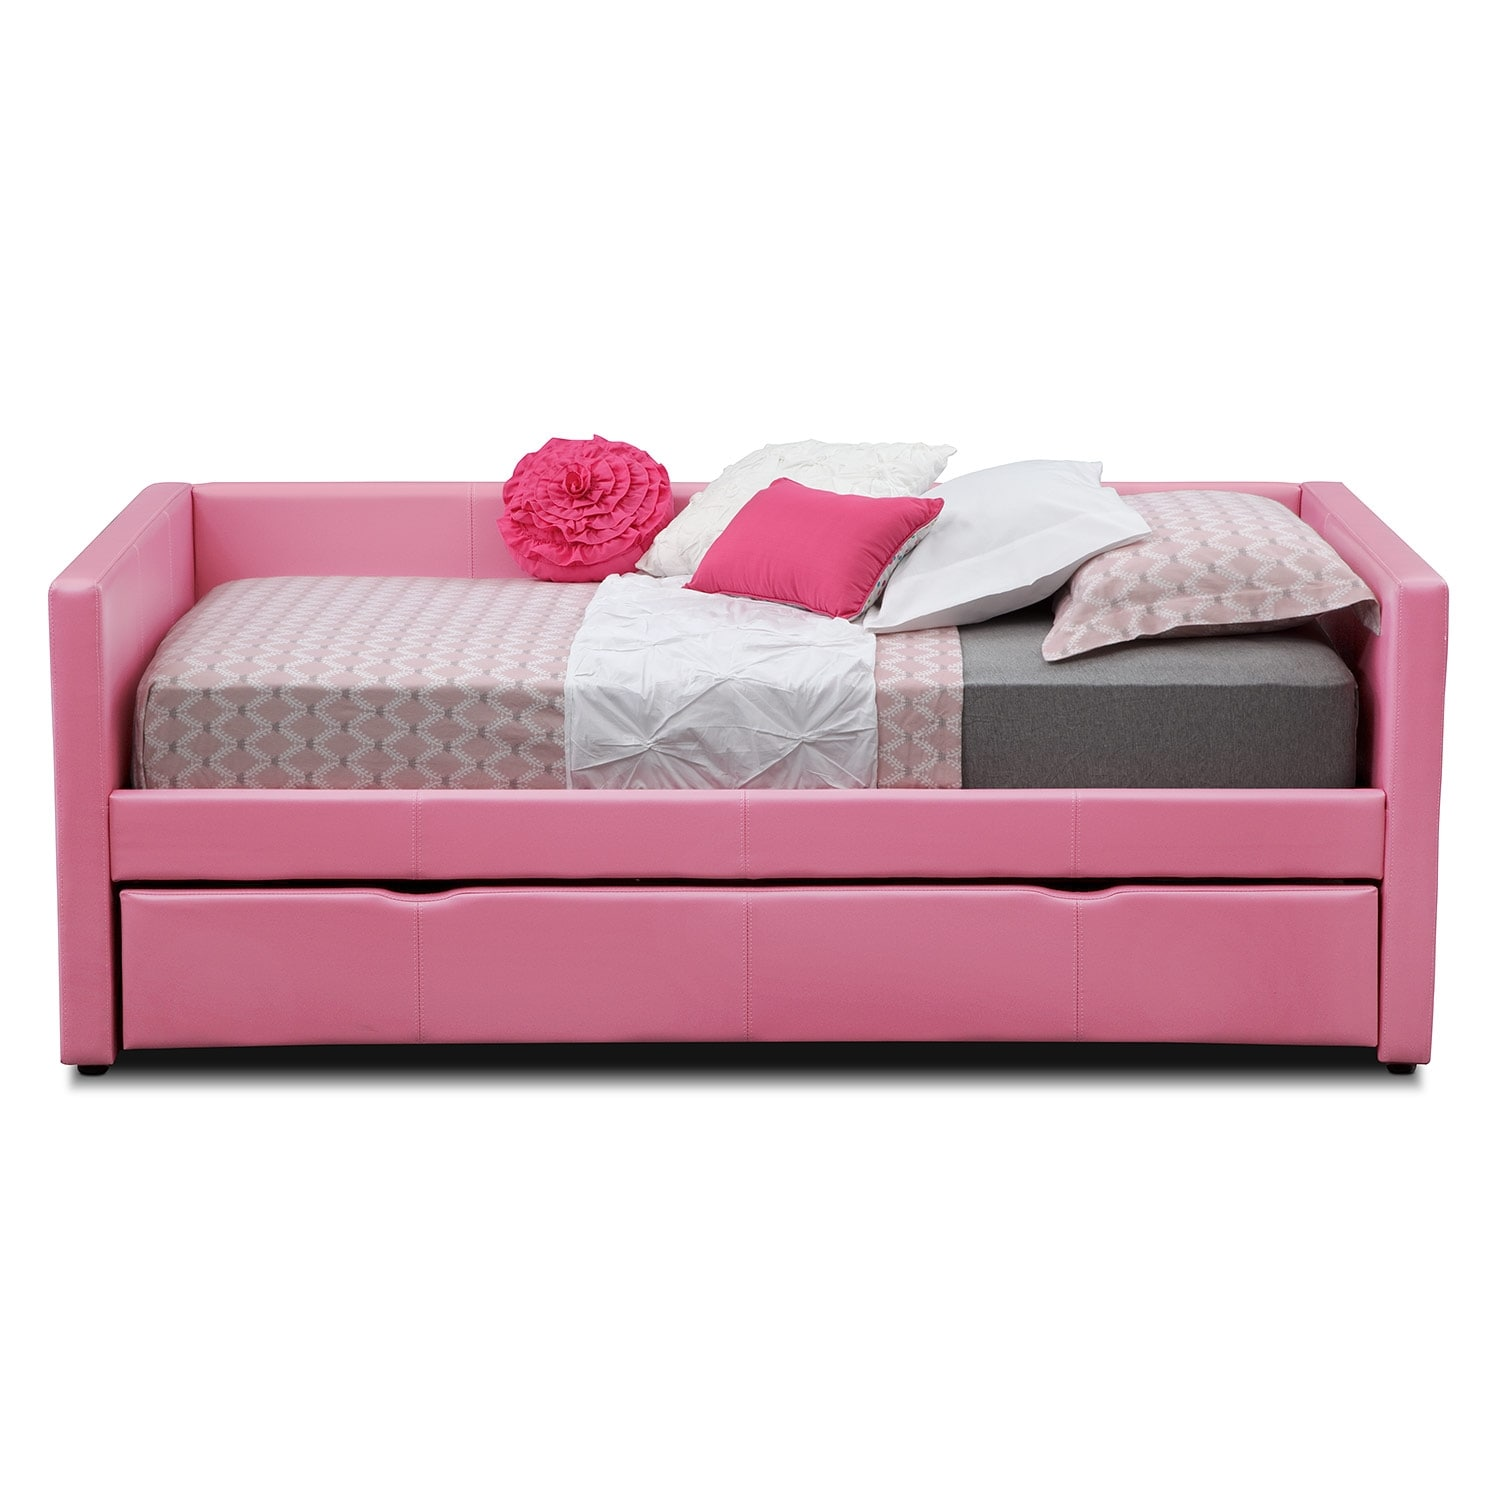 Beds Beds Beds Mattress Factory Outlet Carey Pink Full Daybed with Trundle | Value City Furniture